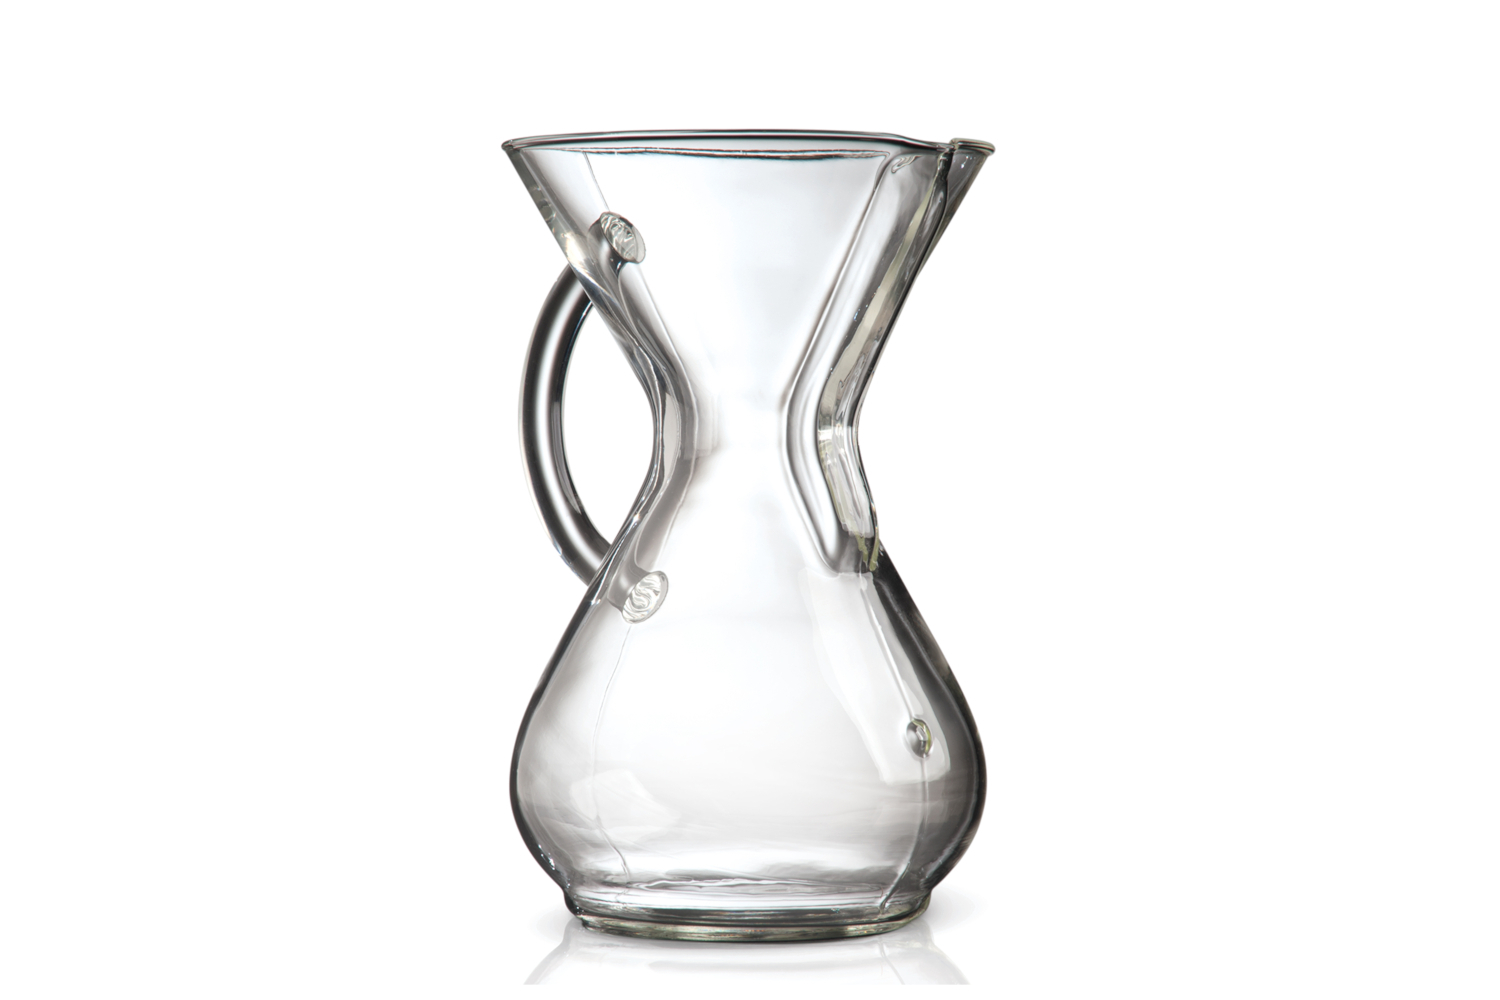 Chemex Glass Handle Coffee Makers - 6 Cup